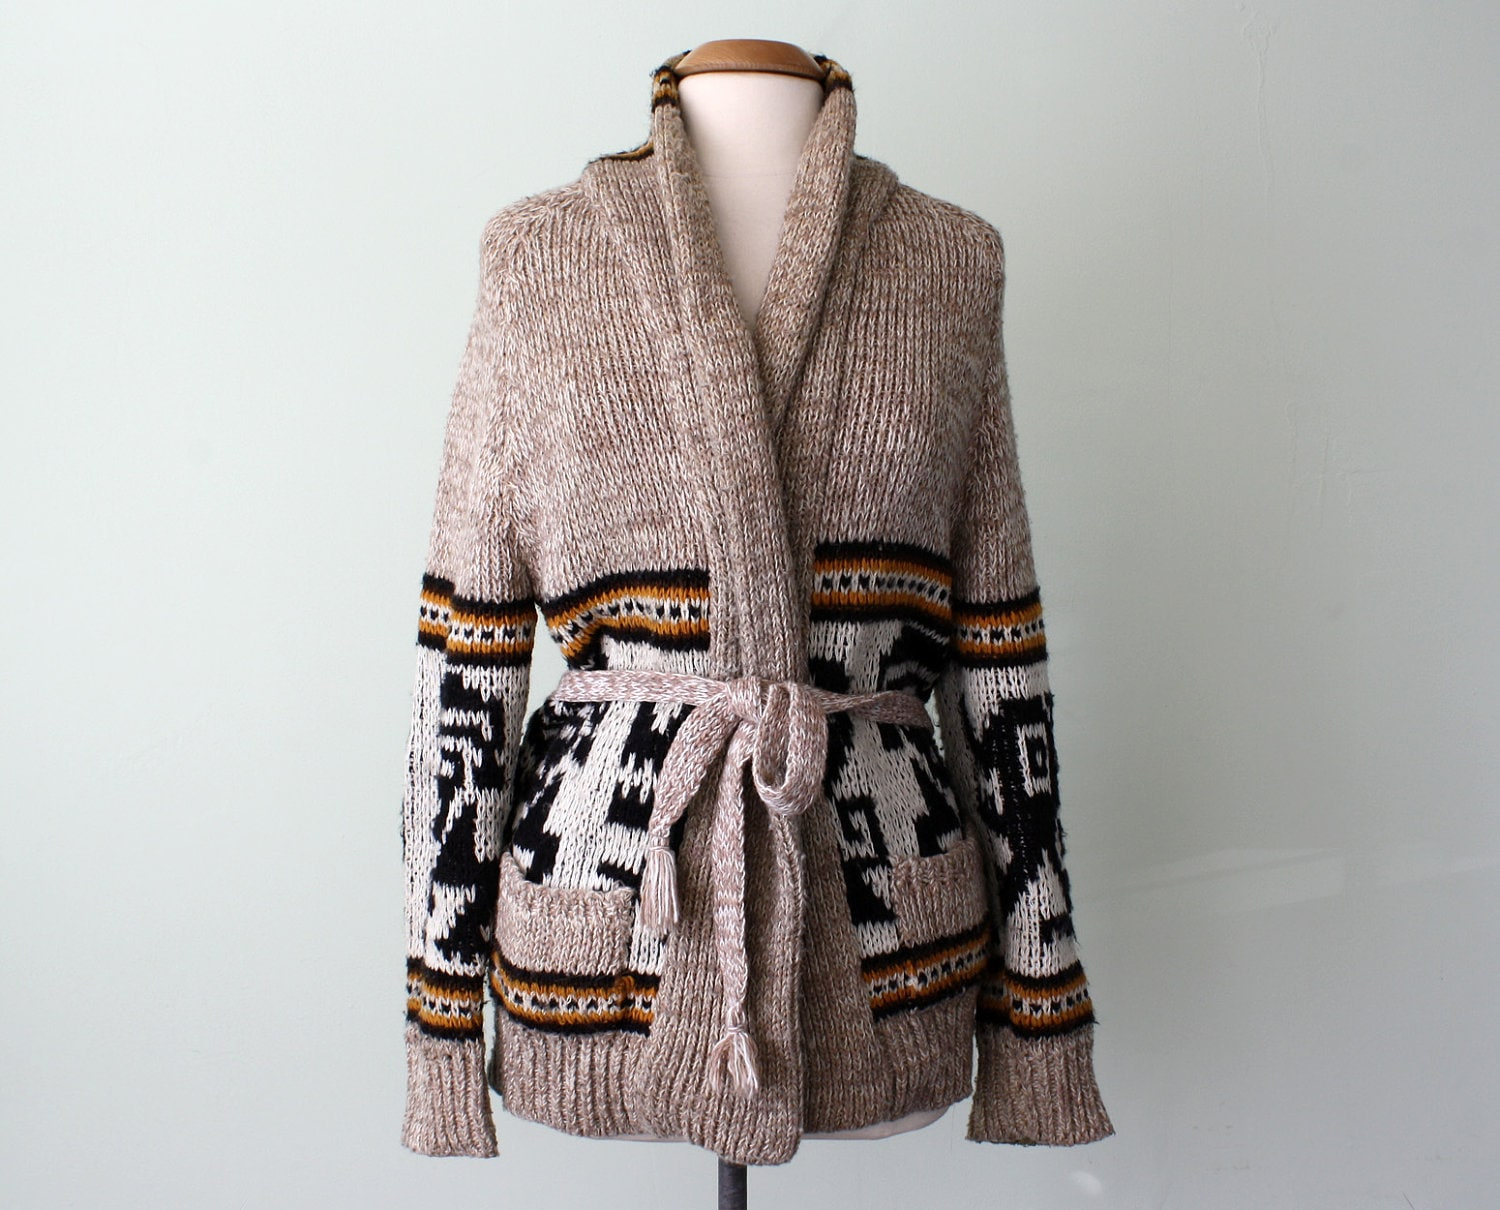 70 Sweater Navajo Native Print Belted Knit Cardigan S M